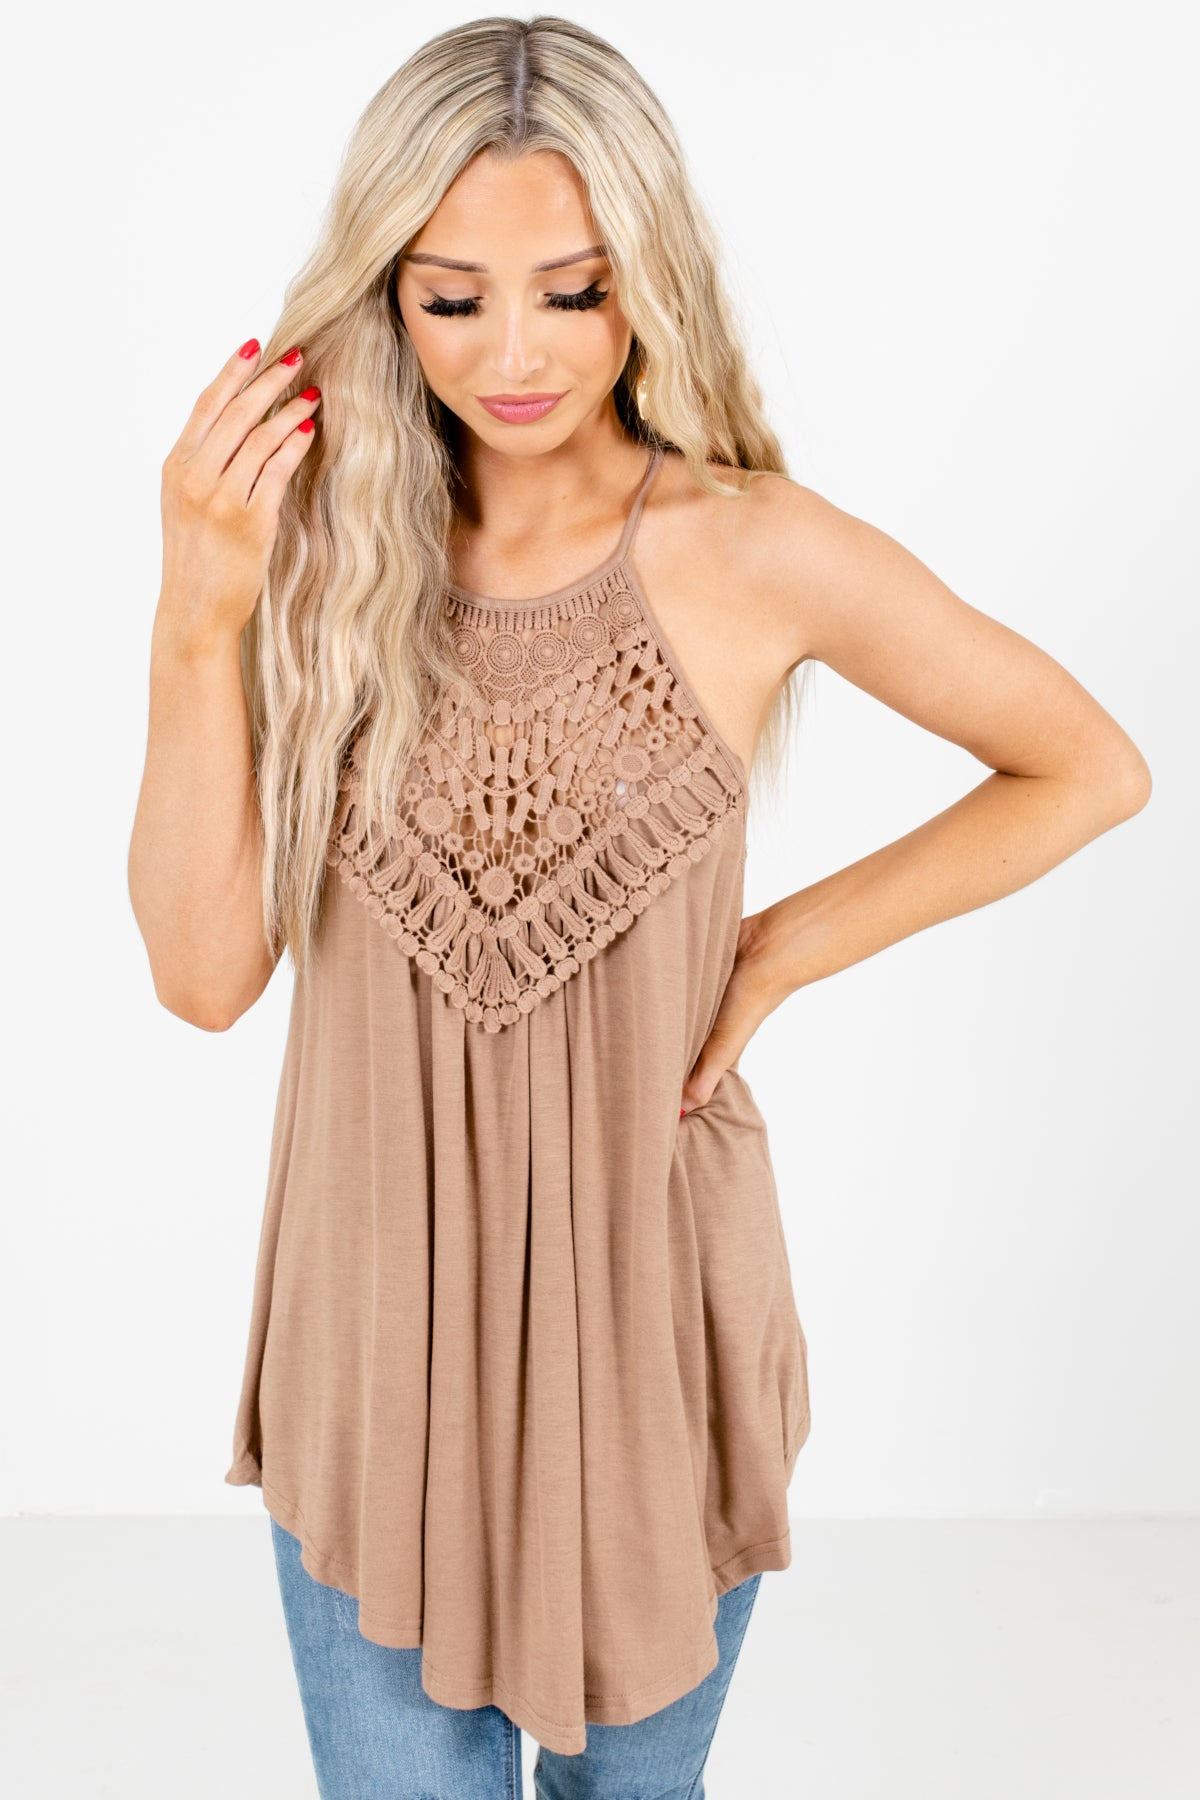 Brown Halter Style Boutique Tanks for Women